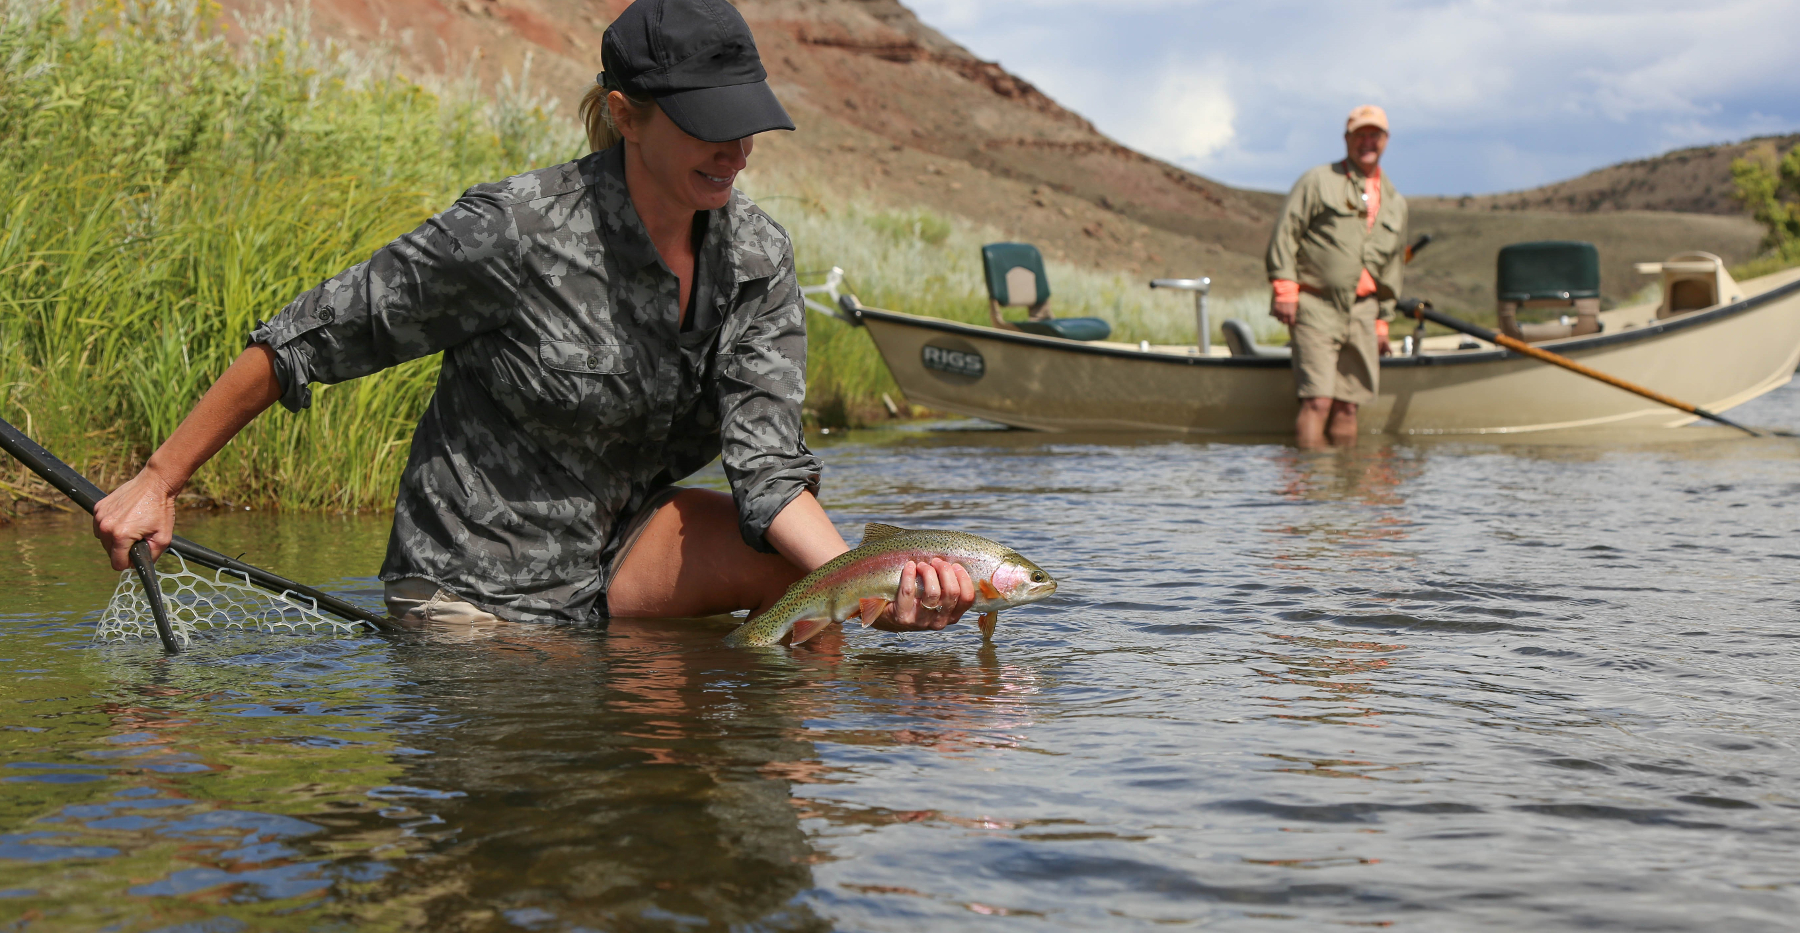 Rigs adventure co fly shop fly fishing guide service and for White river fishing guides